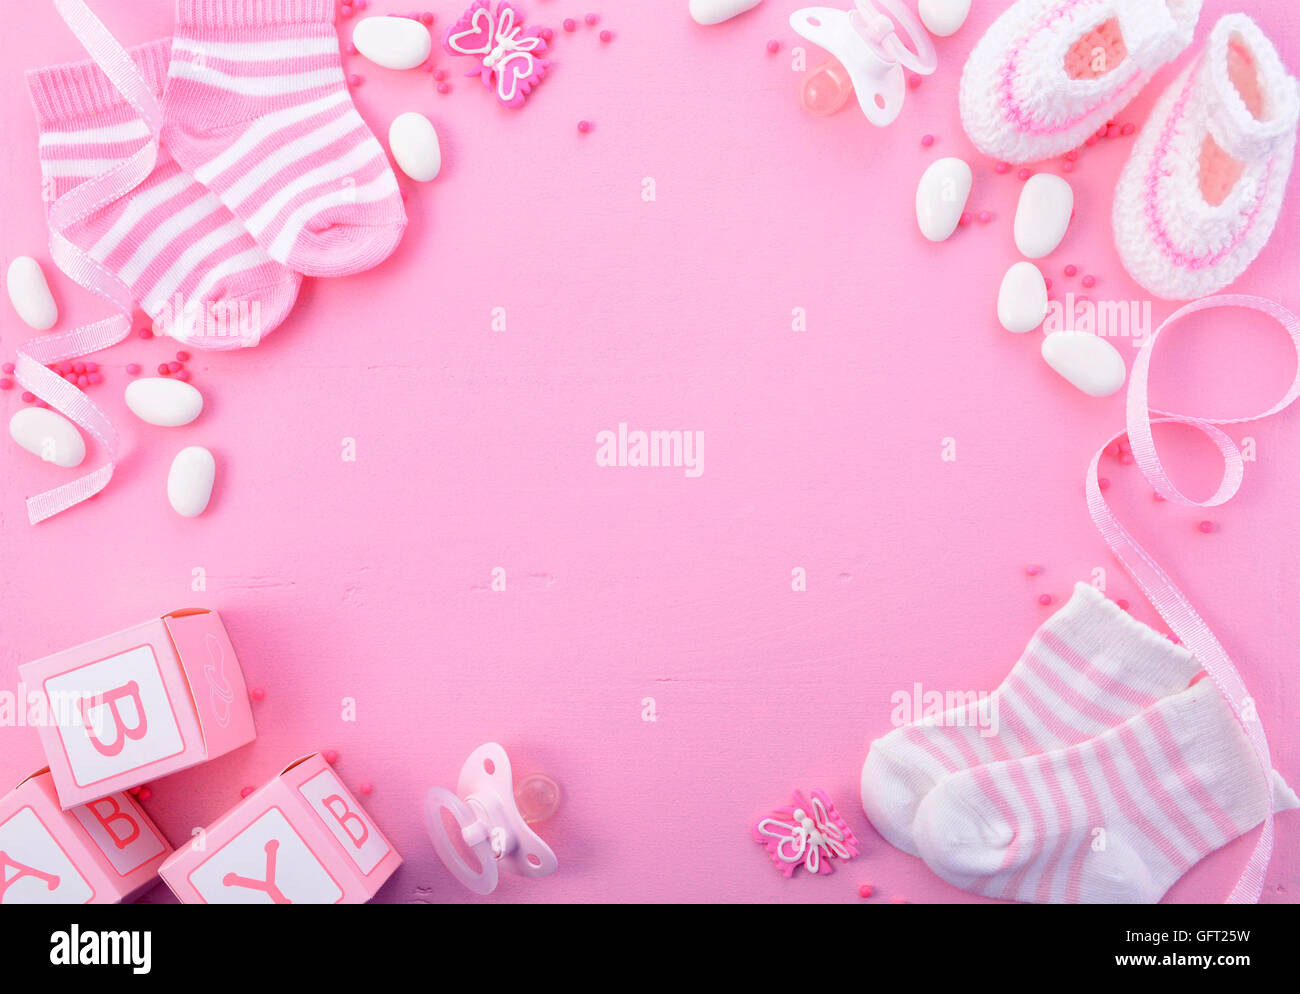 Baby Shower Background Pictures Image collections - Baby ...